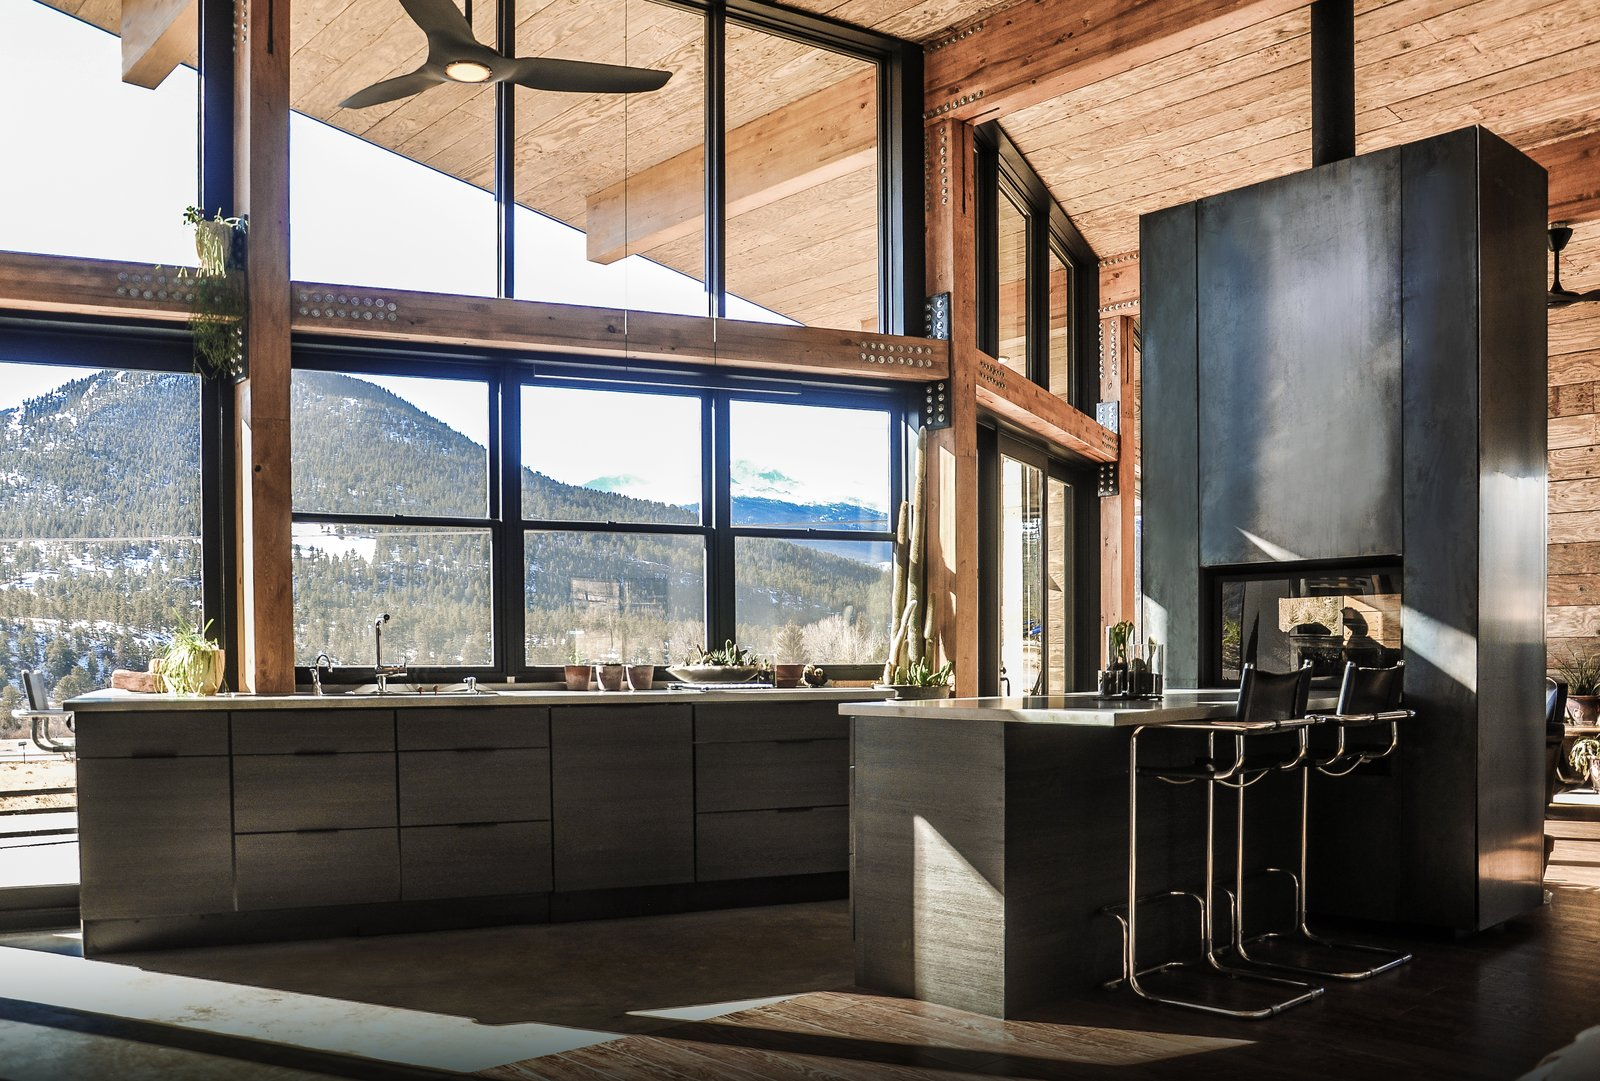 Kitchen, Refrigerator, Microwave, Cooktops, Wood, Dishwasher, Ceiling, Metal, Dark Hardwood, Concrete, Concrete, Range, Wall Oven, Pendant, Concrete, Accent, and Drop In The warm industrial kitchen celebrates views of Rocky Mountain National Park beyond. A see-through, steel fireplace becomes a glowing beacon that warms the kitchen and living room at the heart of the home.   Kitchen Concrete Metal Photos from Estes Park Residence